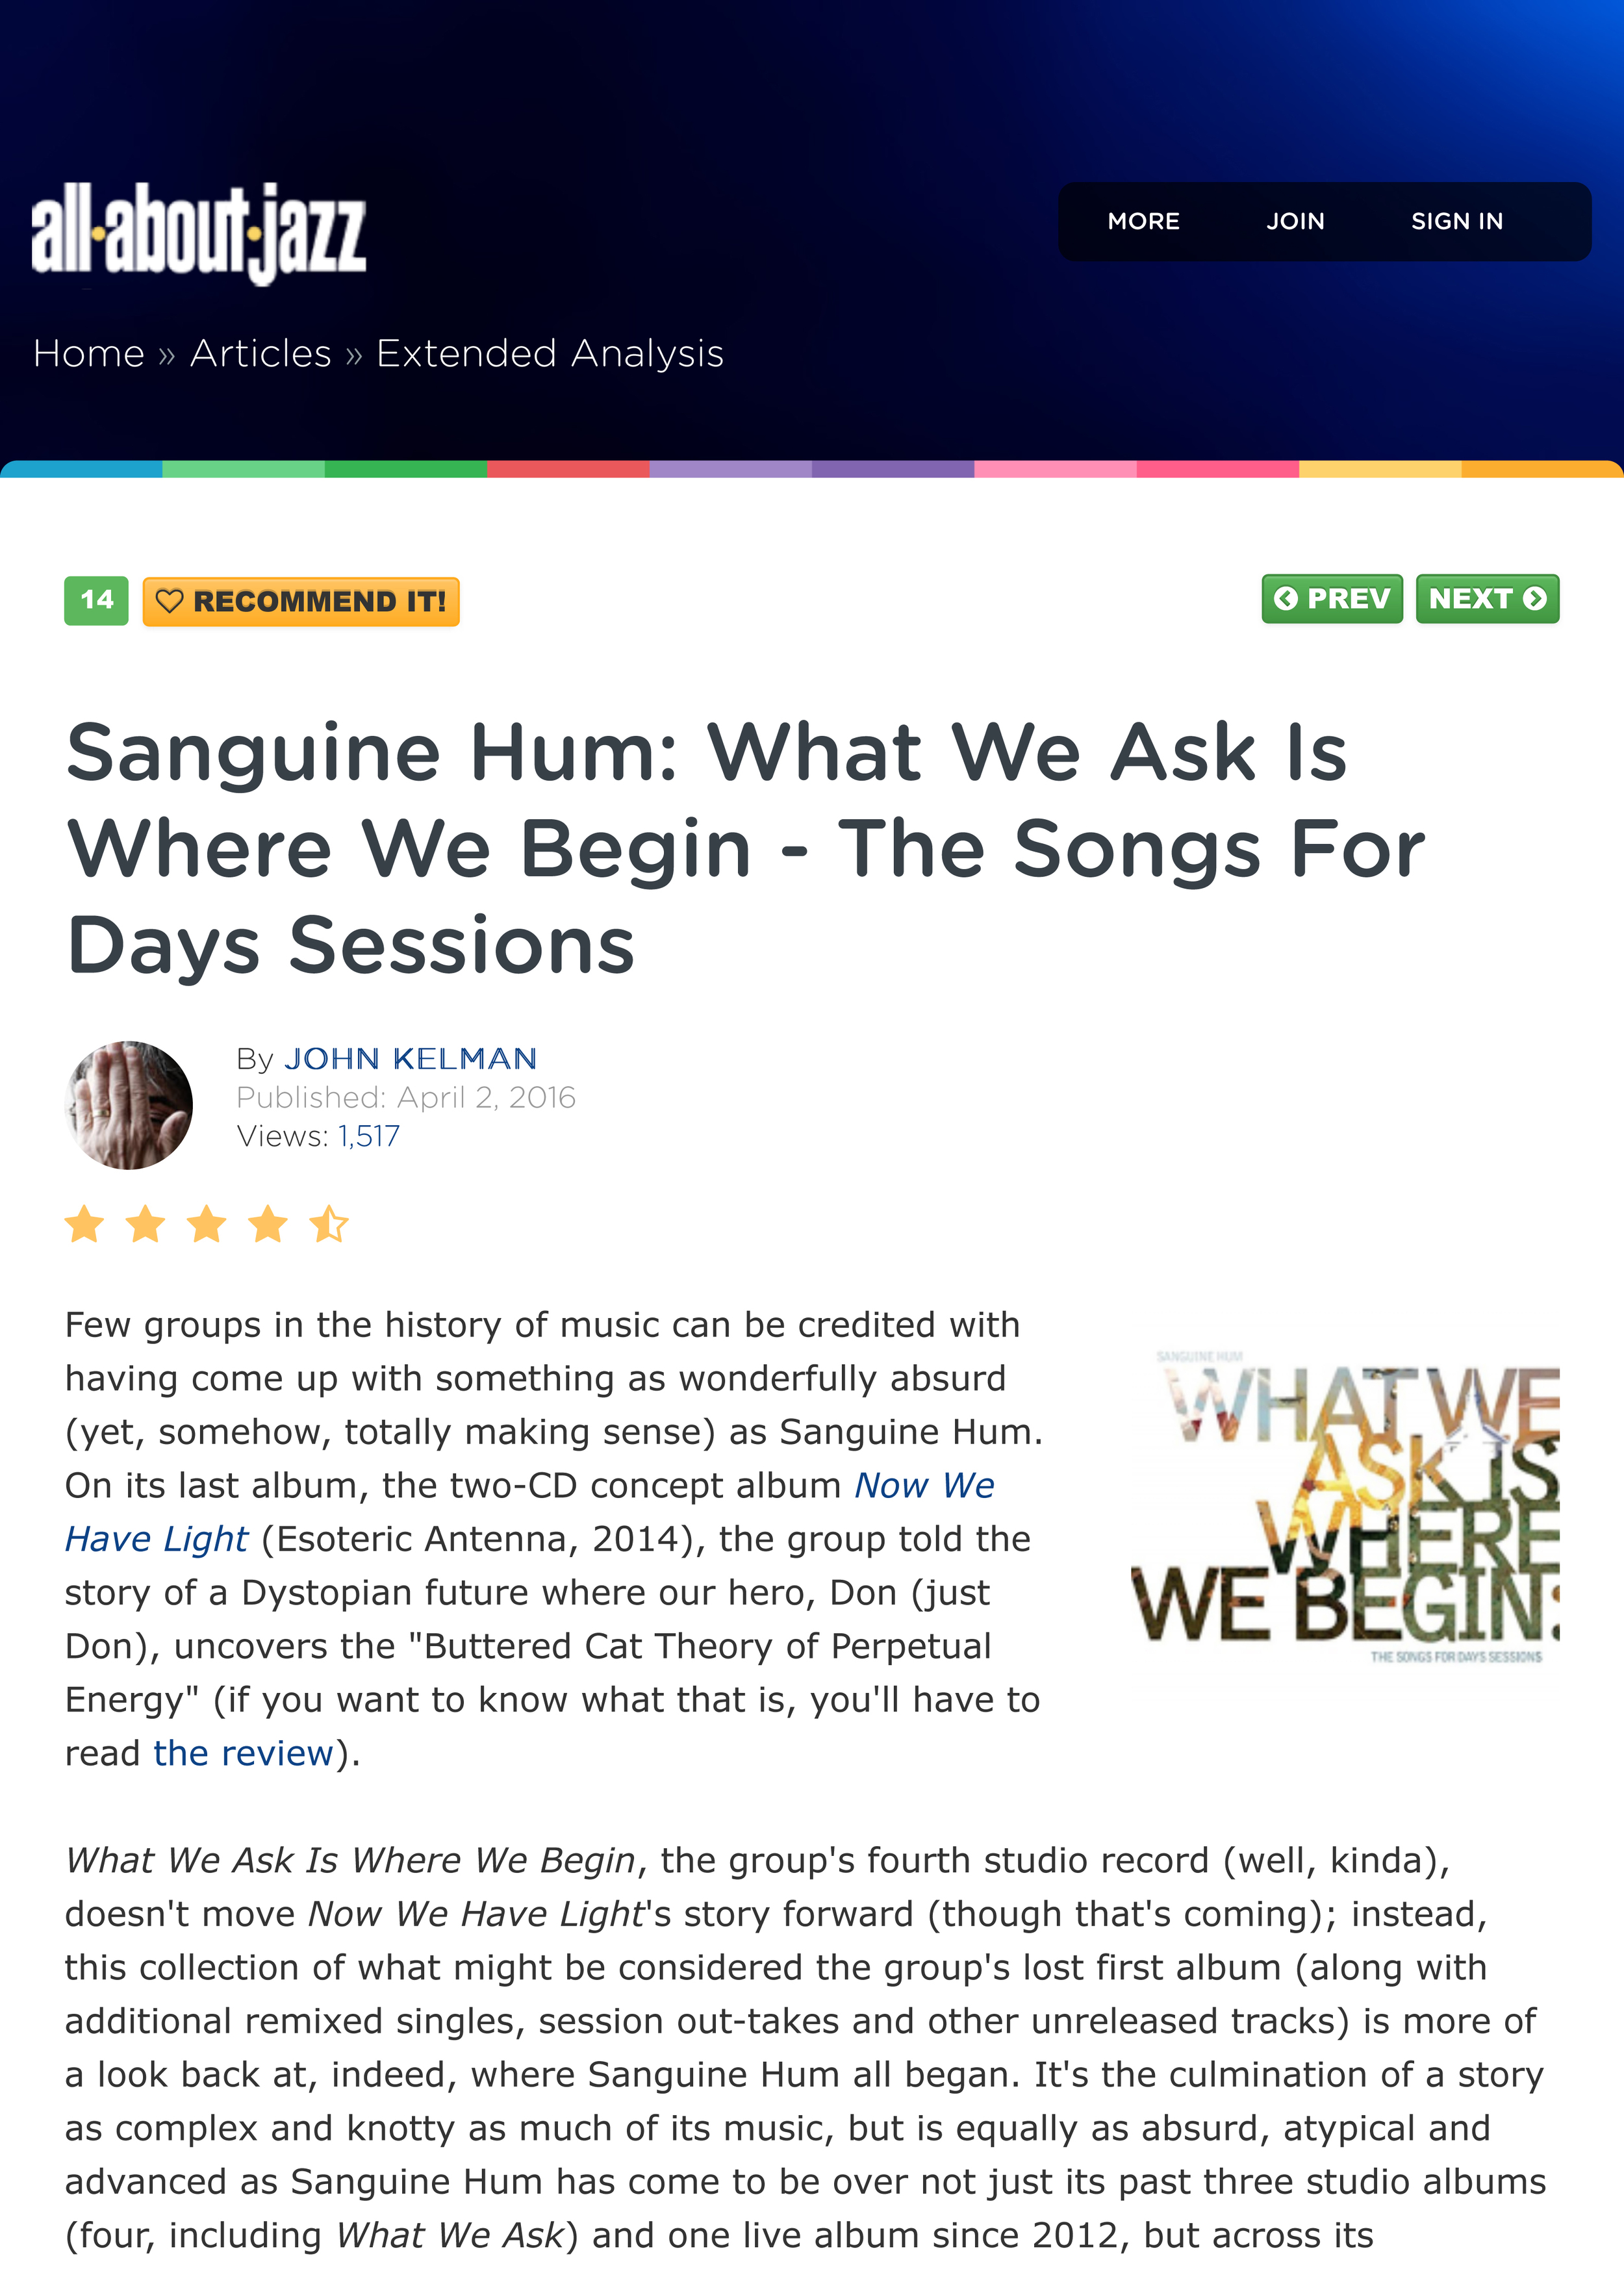 Sanguine Hum | What We Ask Is Where We Begin - John Kelman, All About Jazz April 2016